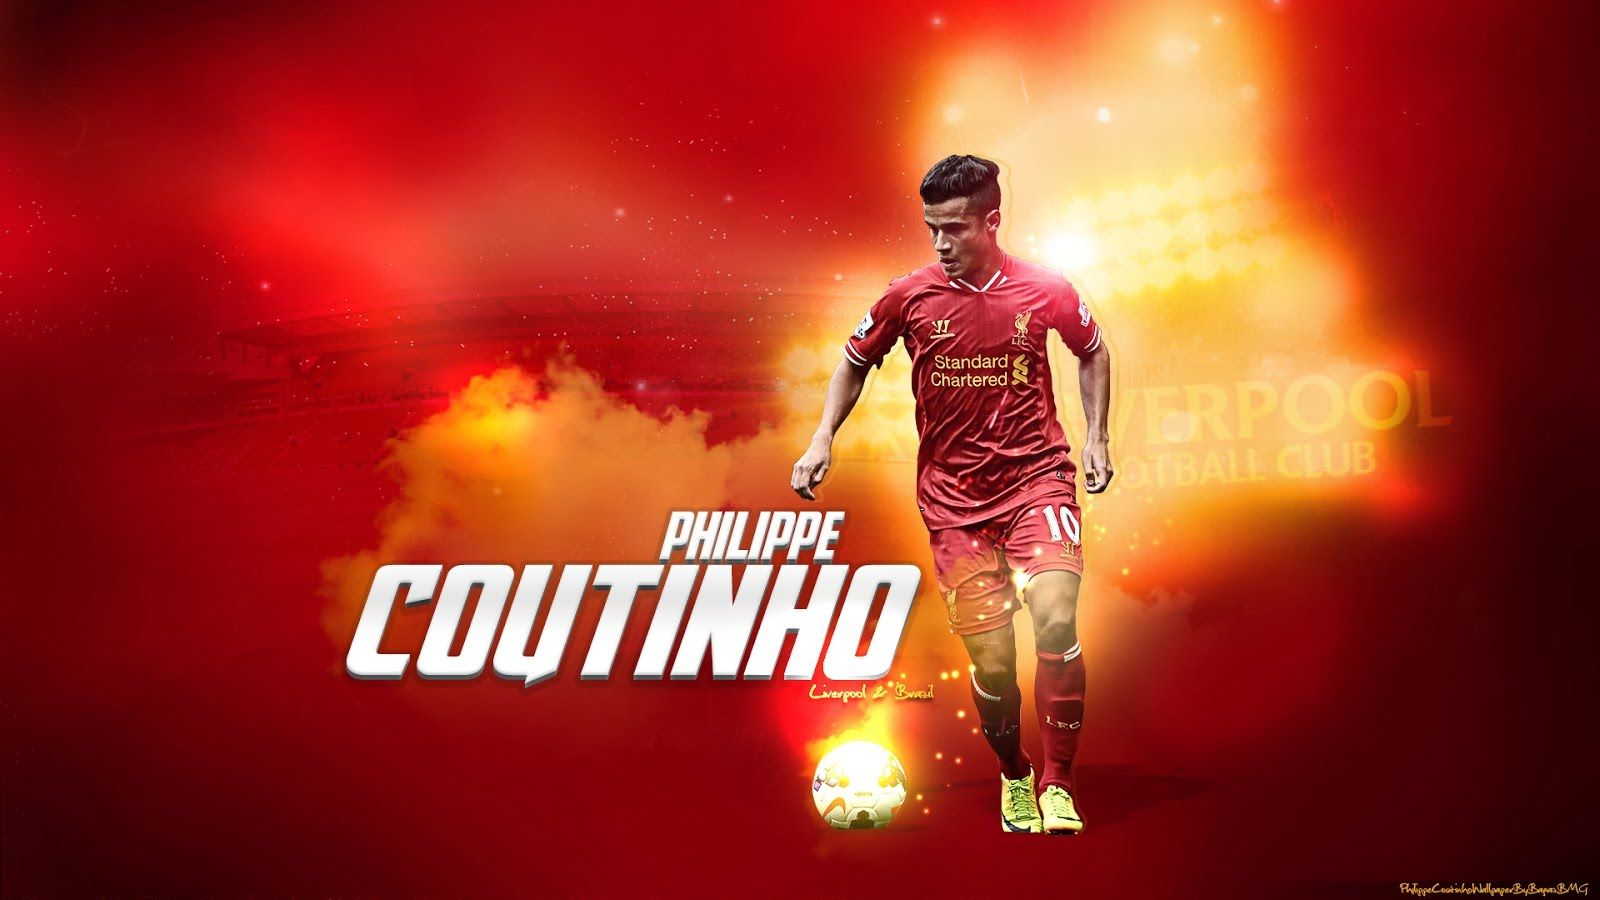 Philippe coutinho wallpaper hd wallpaper hd cool - Coutinho wallpaper hd ...